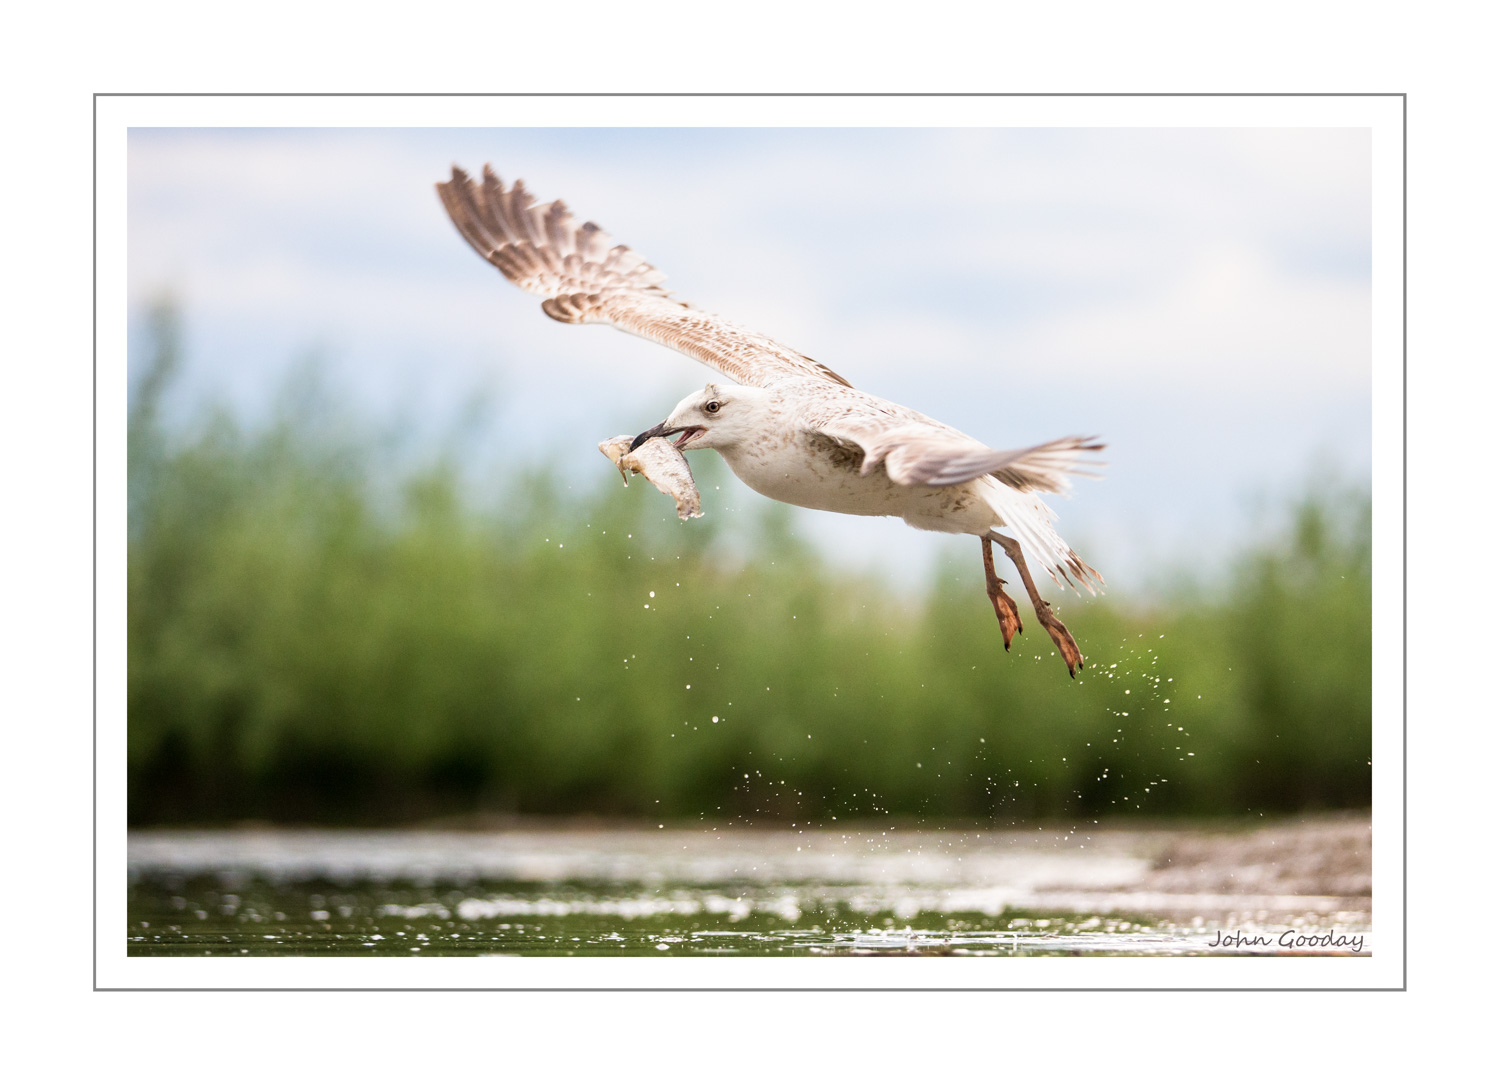 (Image: Yellow-legged Gull fishing. Canon EOS 1DX, EF70-200mm f/2.8L IS II, 1/1250 sec @ f/2.8, ISO 2000, tripod, hide)